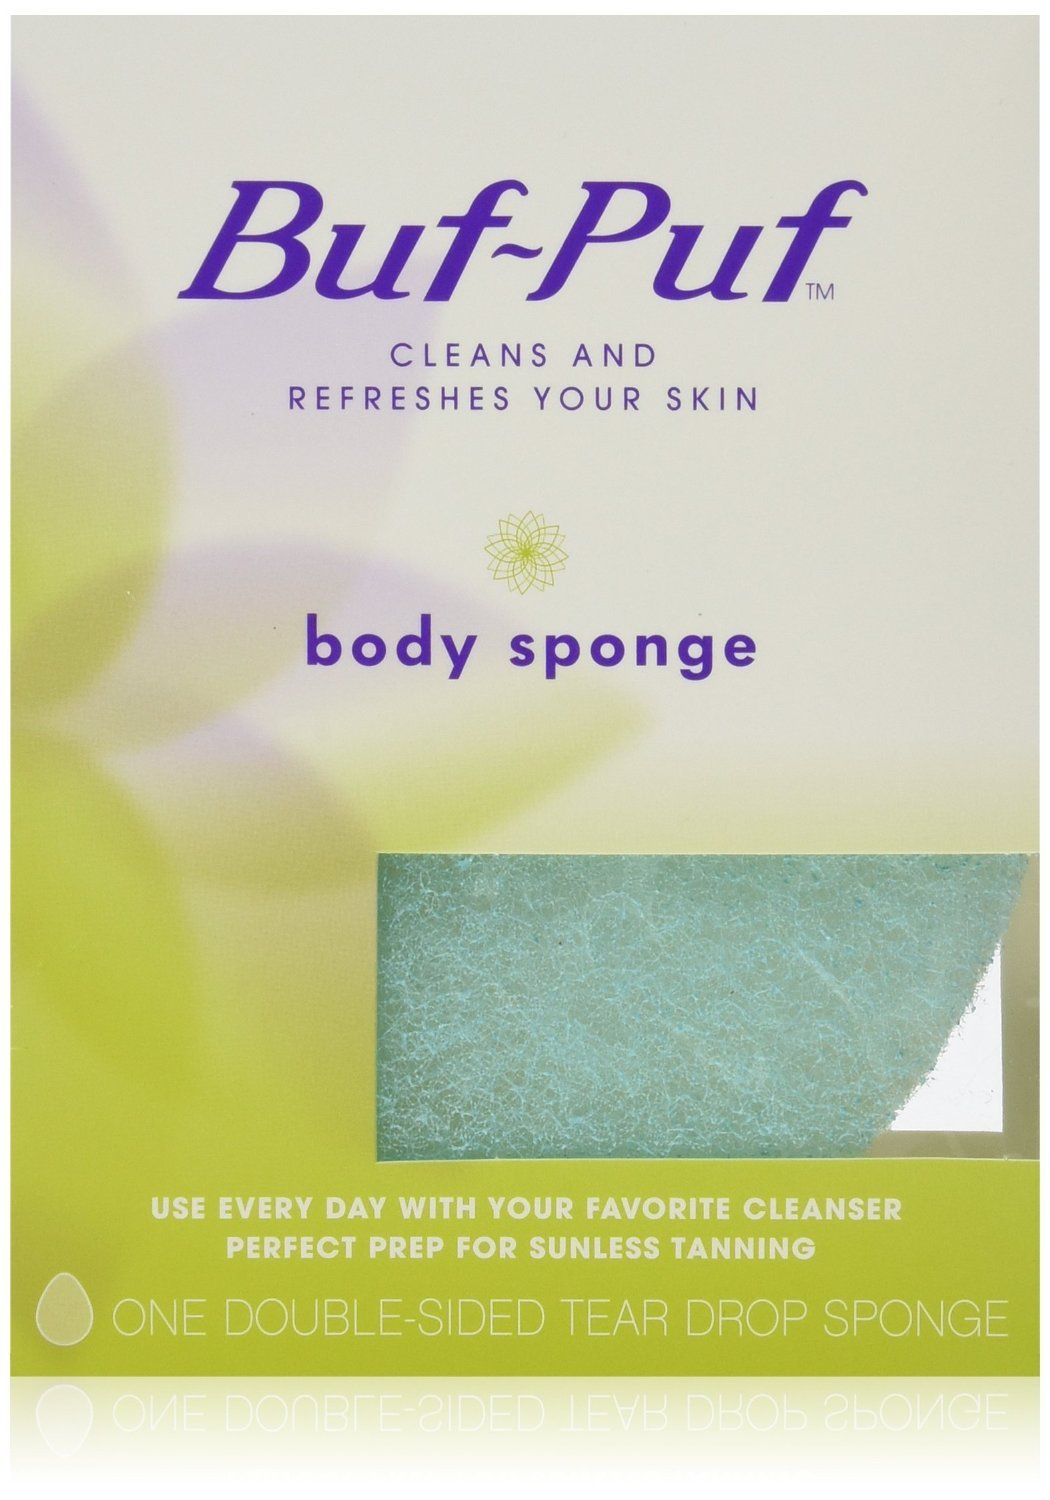 Buf-Puf Double-Sided Body Sponge, 6 Count Everready First Aid s-11592